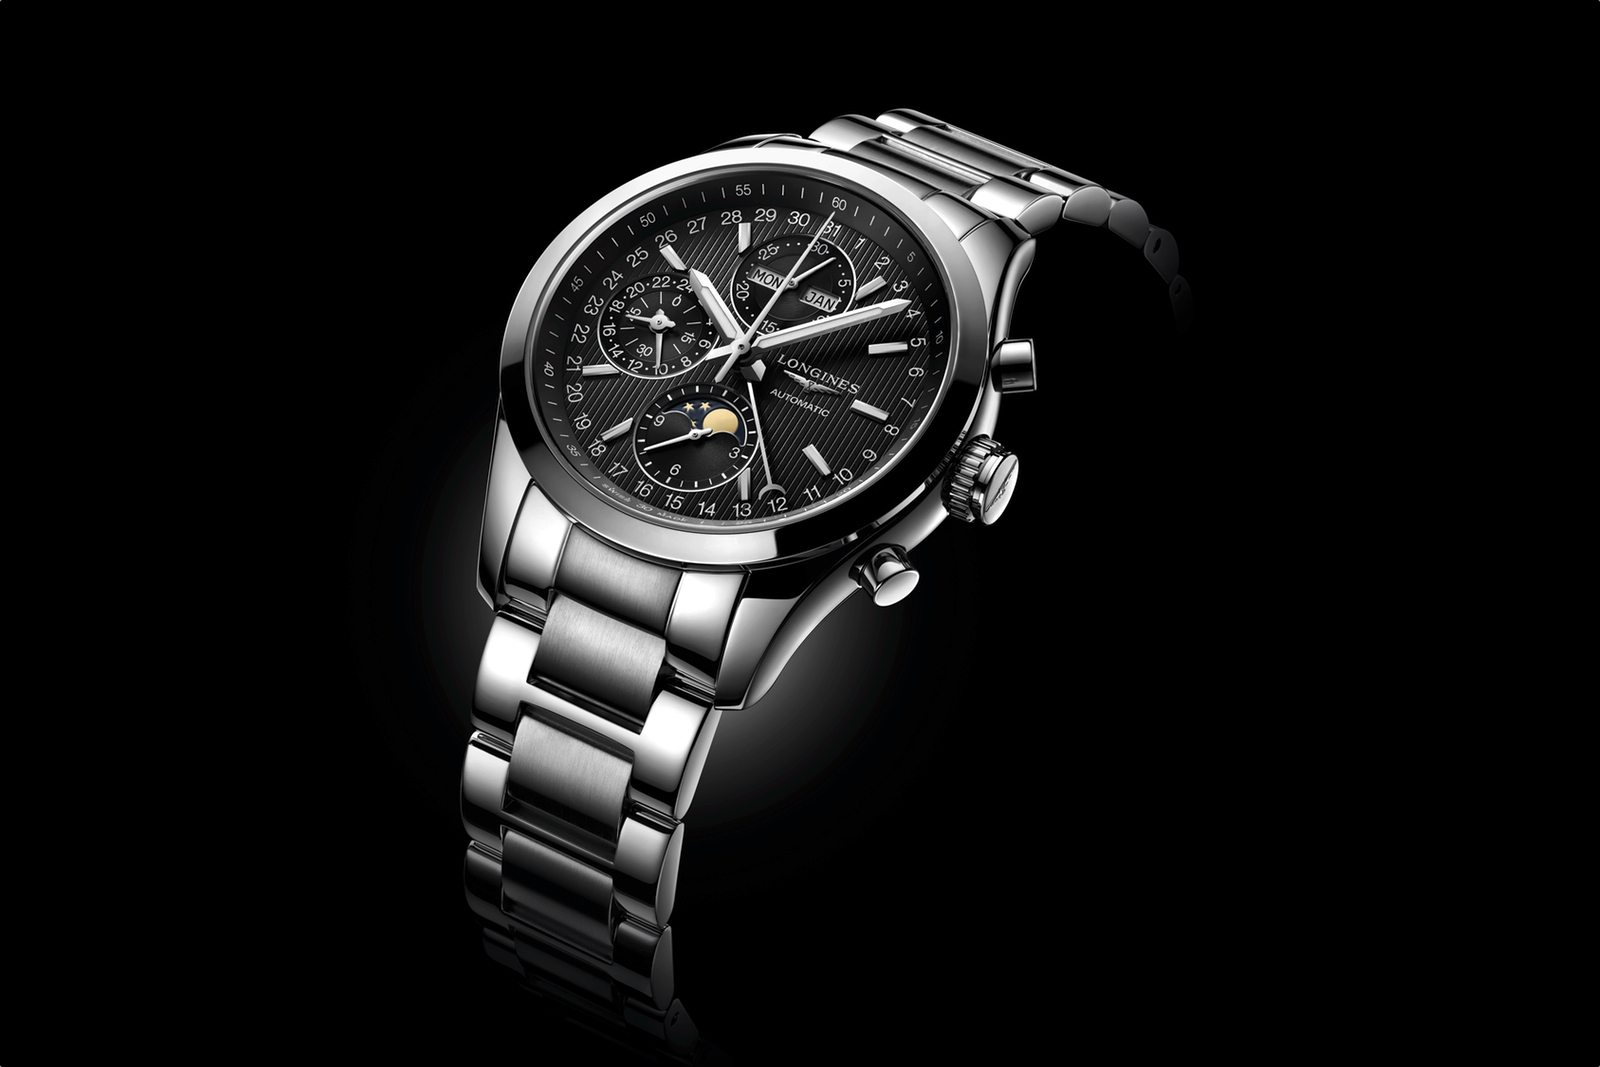 Longines-Conquest-Classic-Moonphase-thumb-1600x1067-24995.jpg